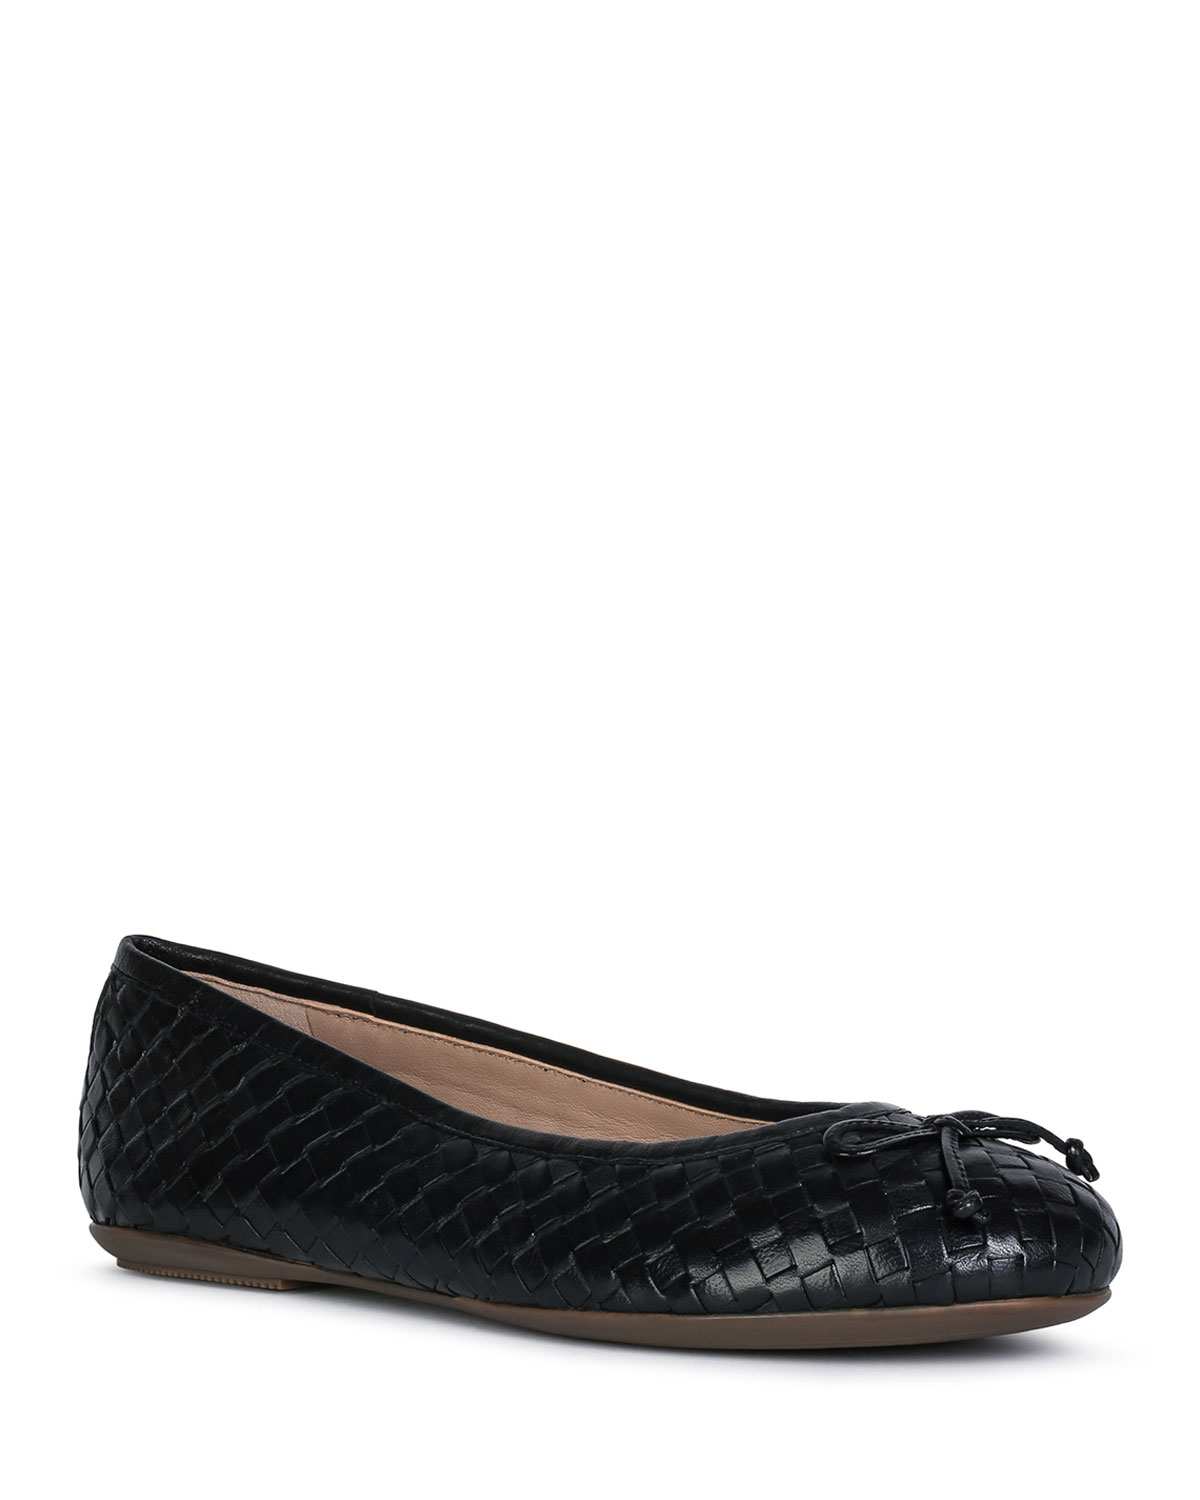 Geox Leathers WOVEN LEATHER BOW BALLERINA FLATS